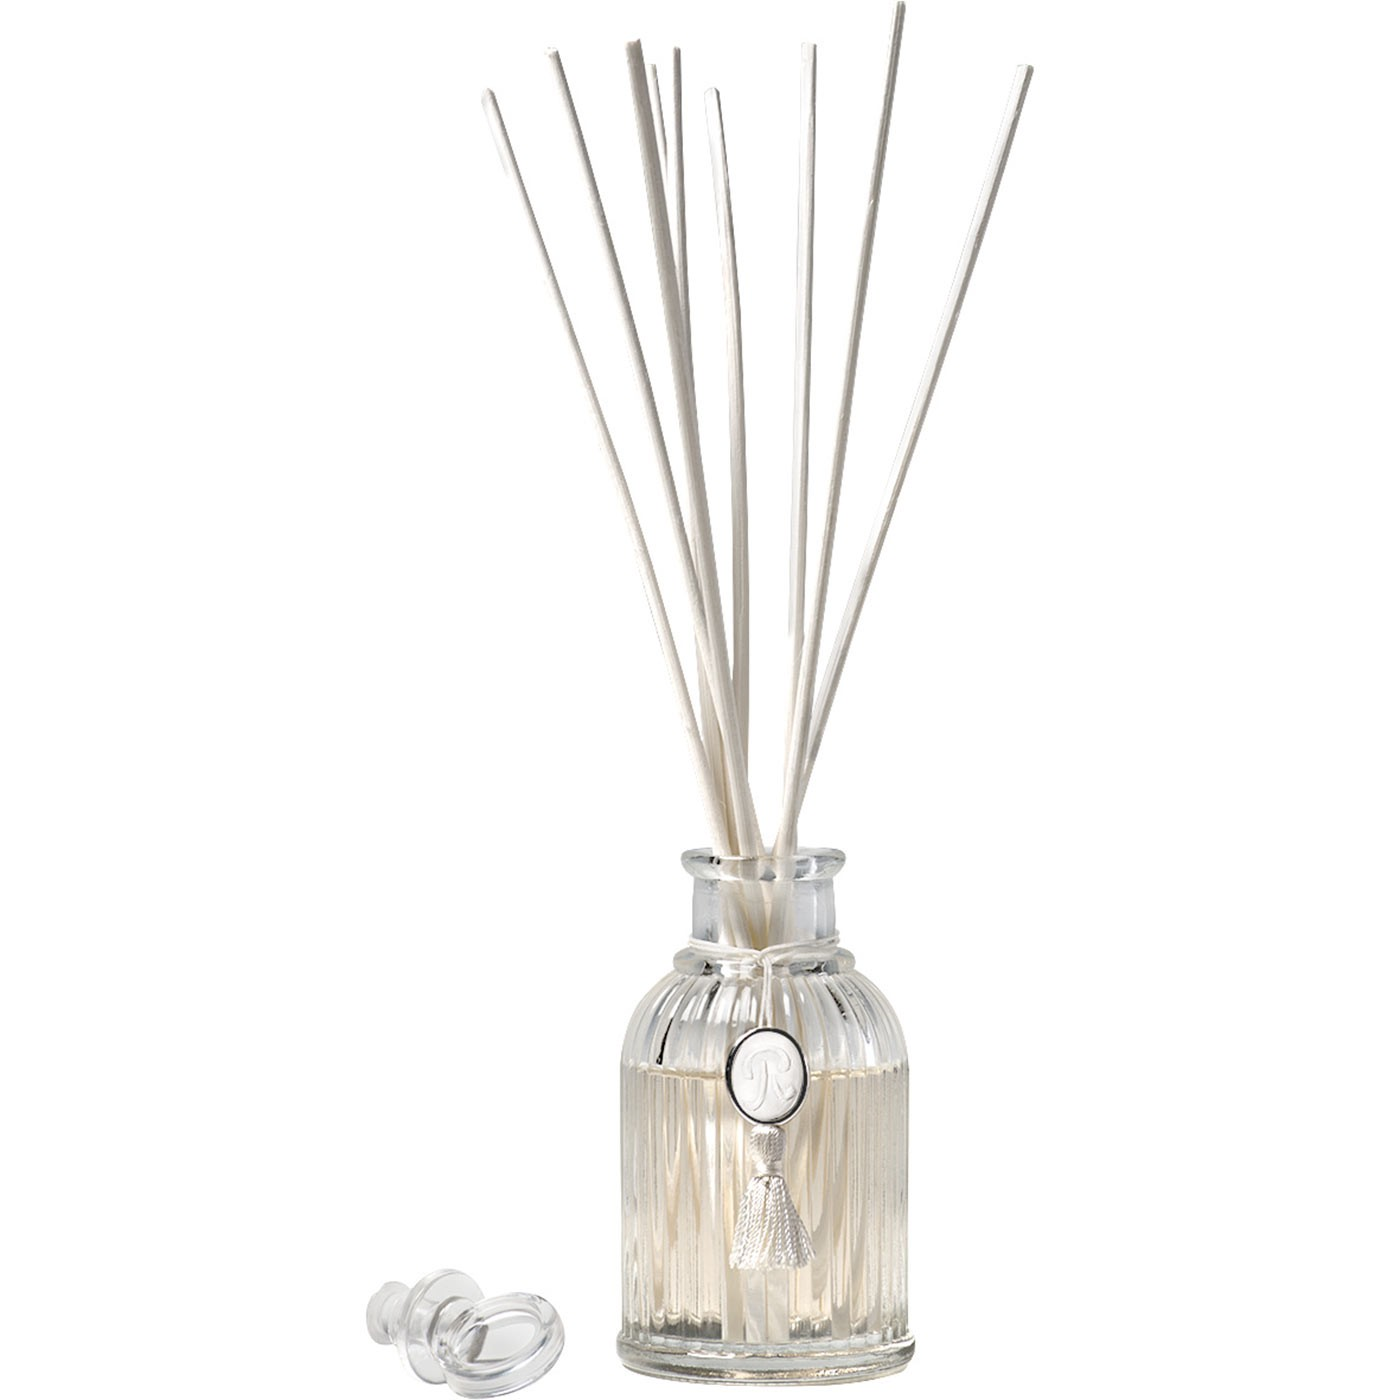 Fragrance Diffuser Rise Powder Scent 90 Ml Mathilde M Aromatic Bunch France